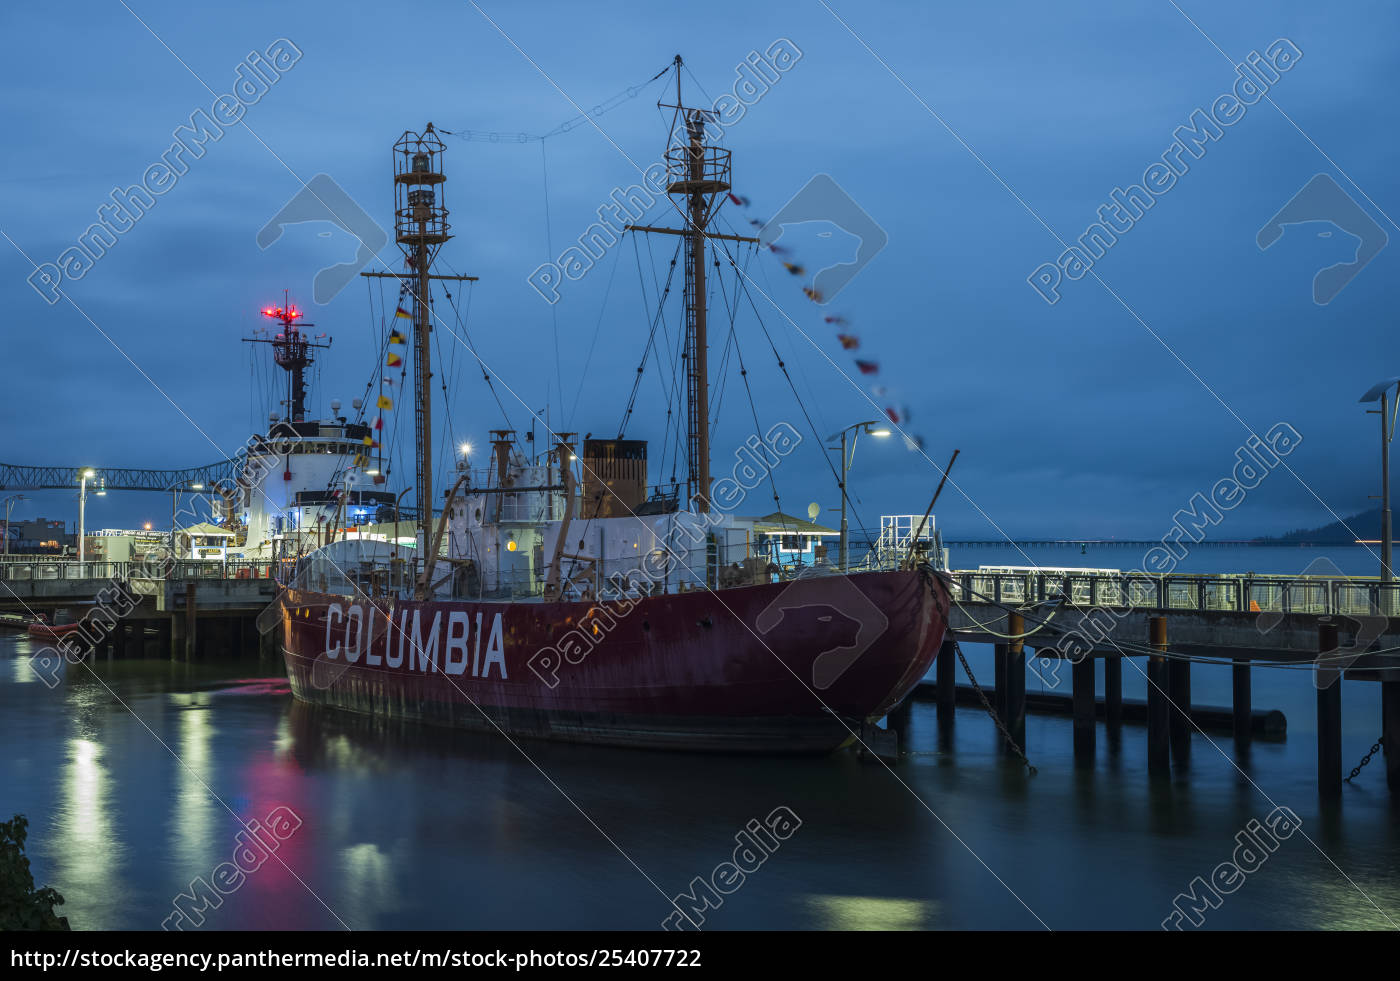 columbia, lightship, docked, along, the, riverfront - 25407722